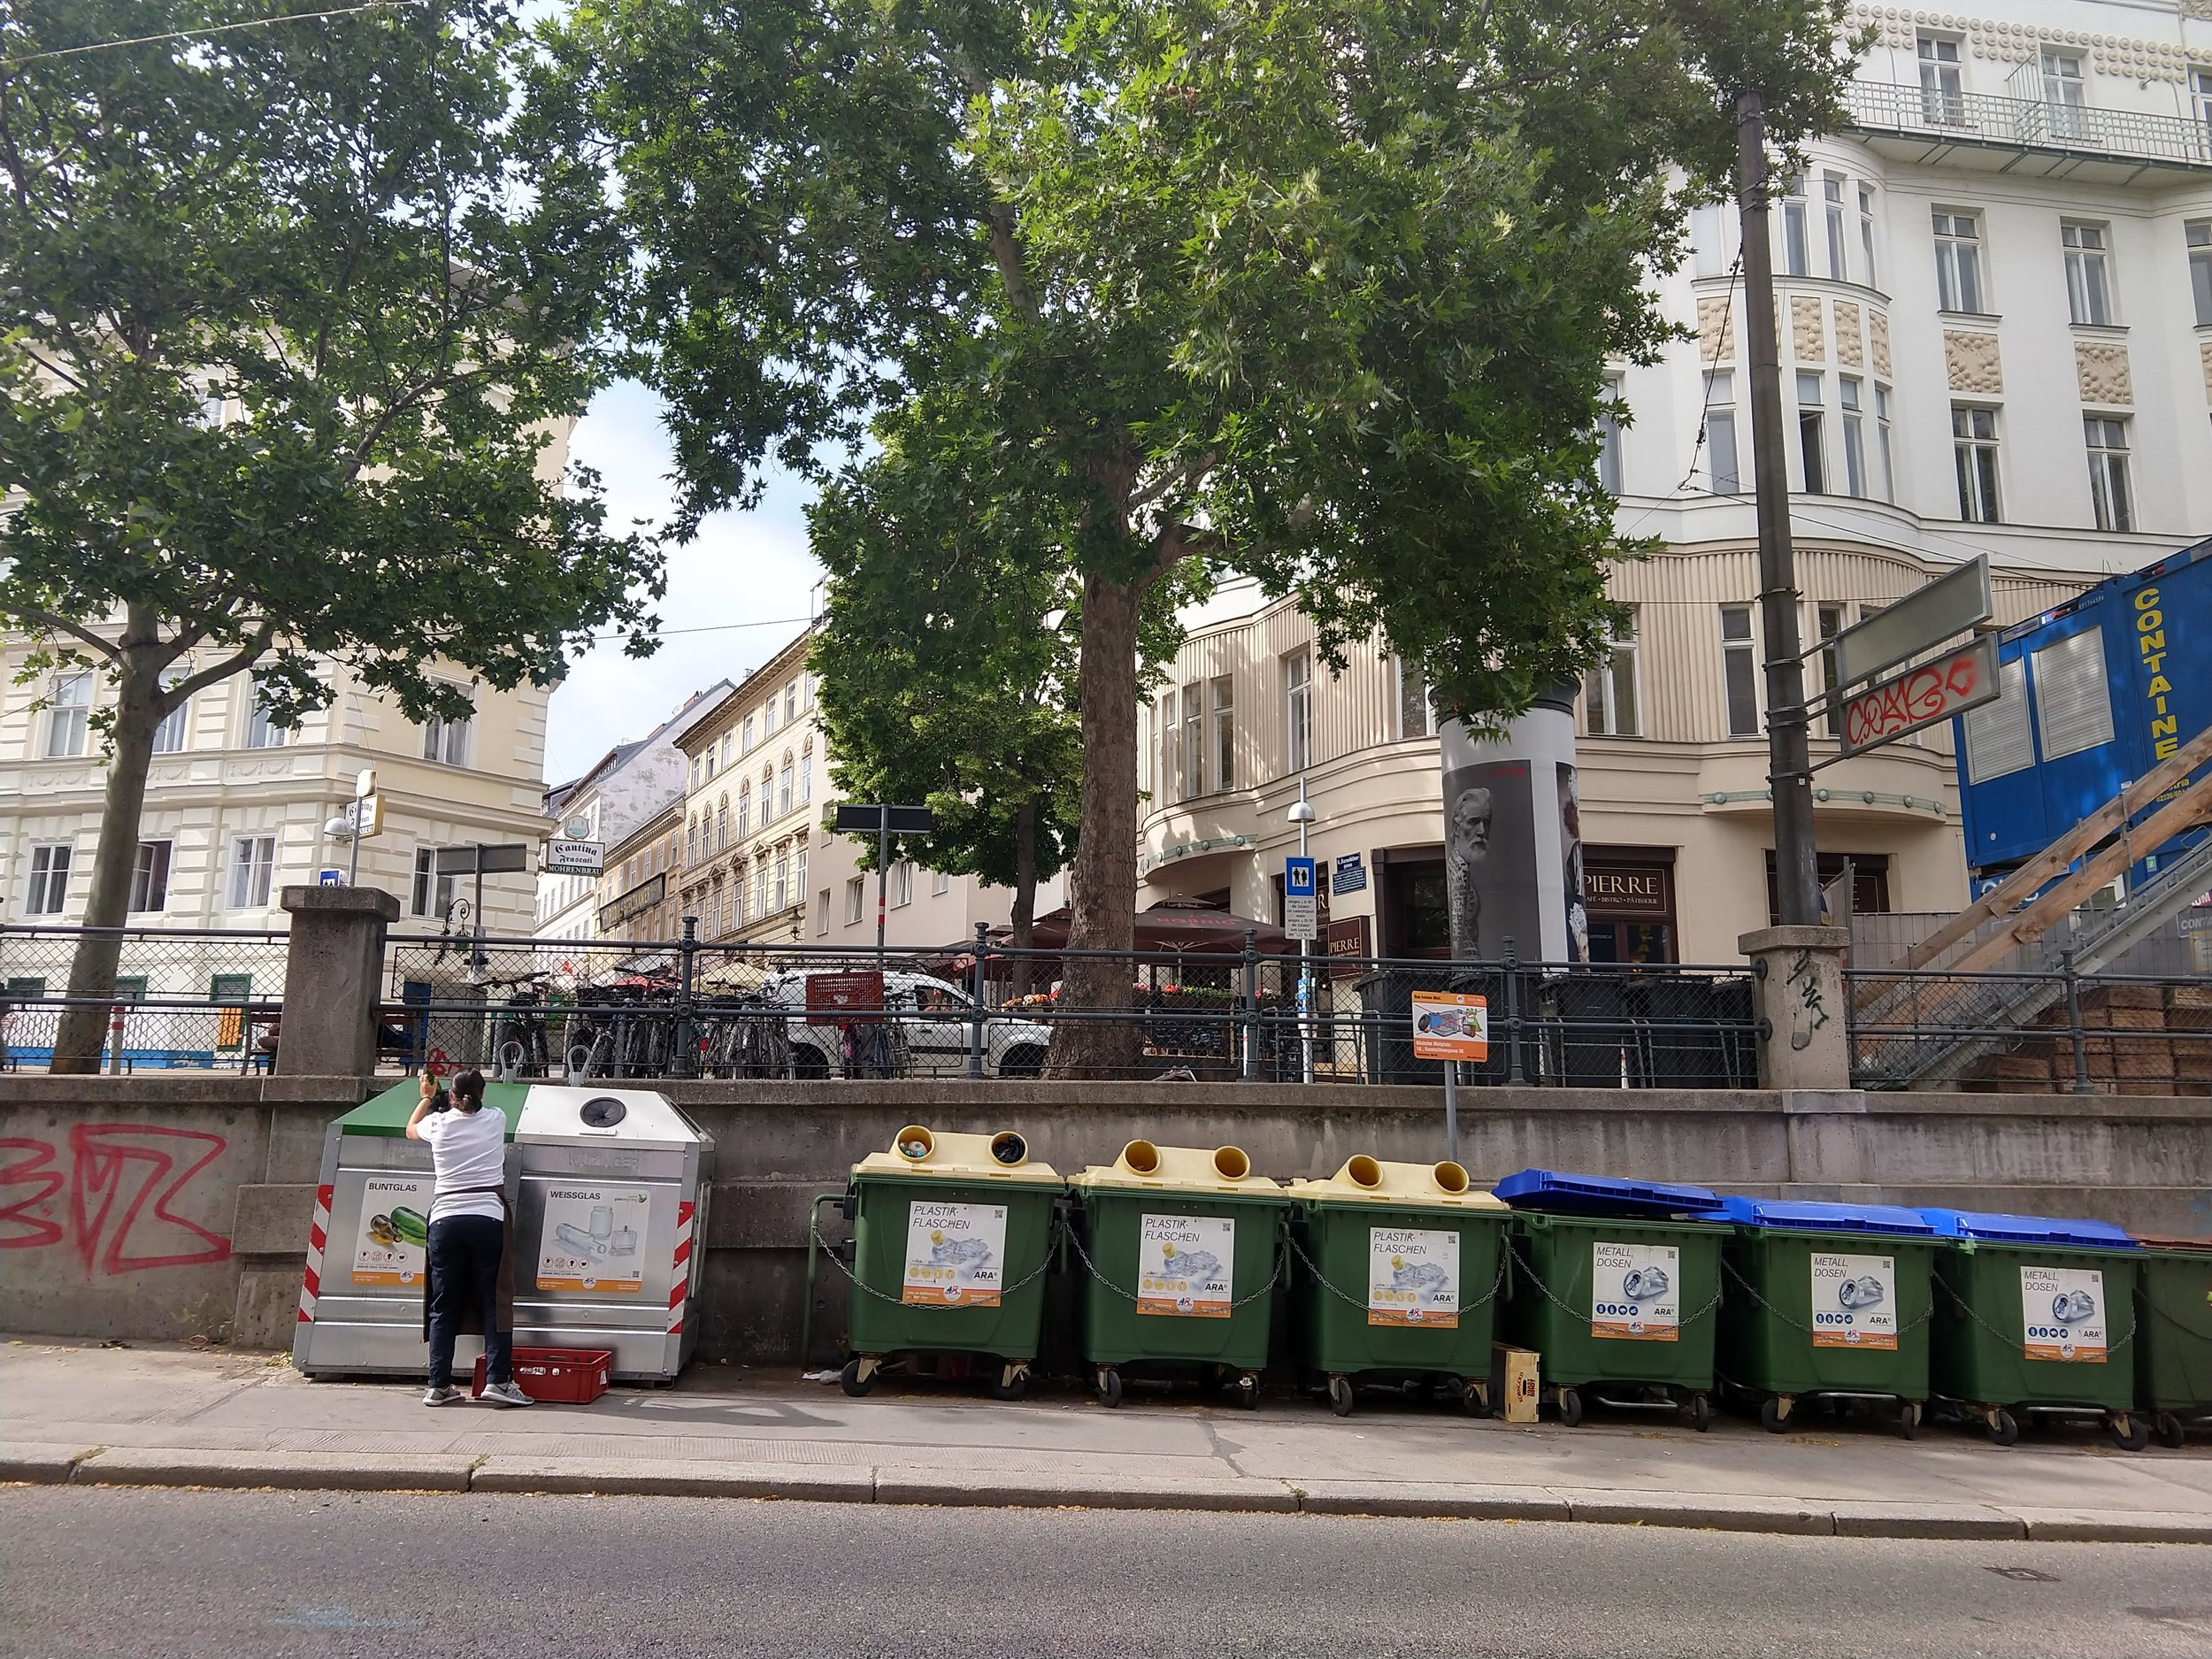 Recycling bins along the street — one of many reasons to love Vienna. I think I also heard recently that it's been voted a top city for livability.